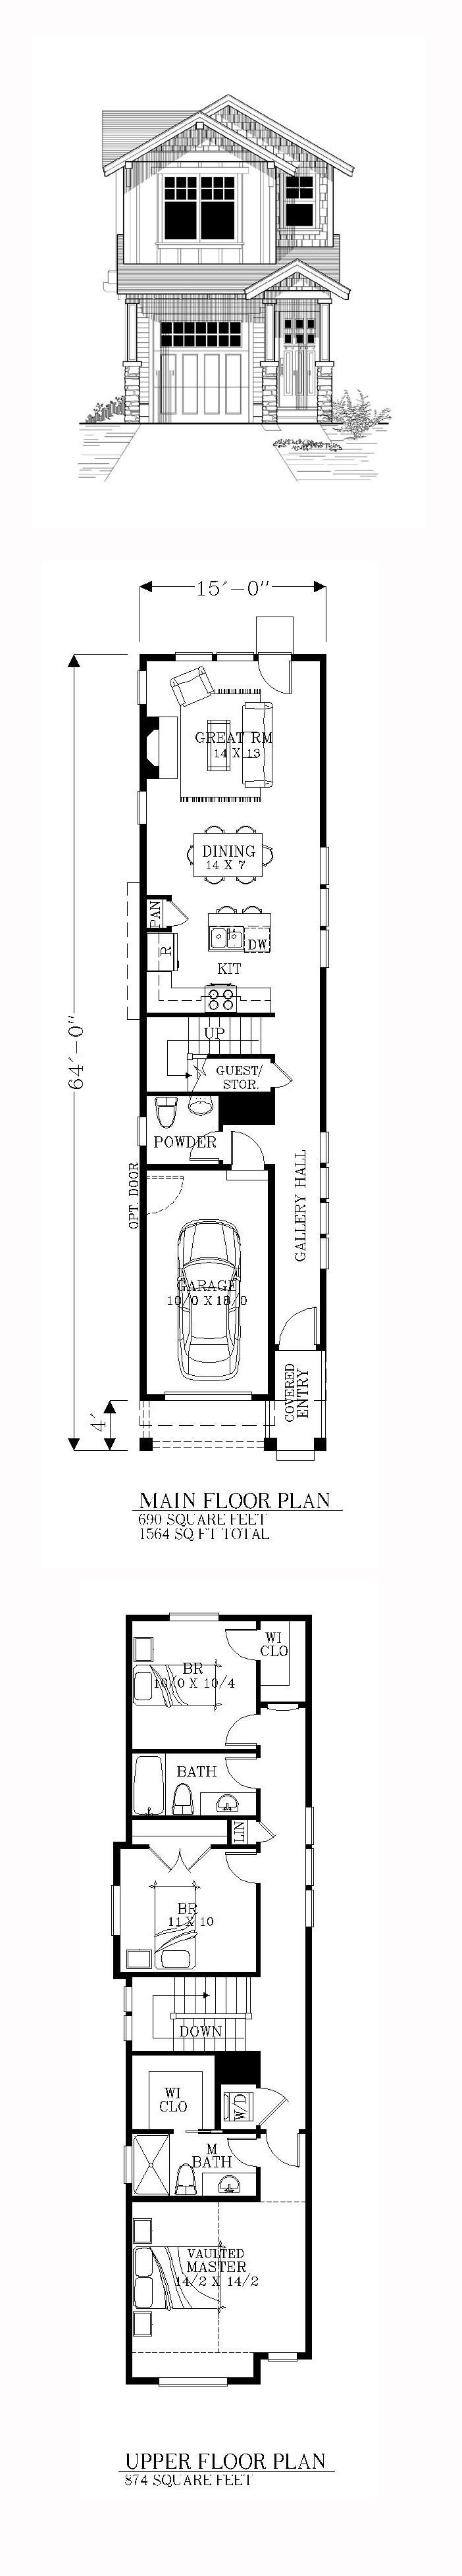 17 best narrow lots images on pinterest small houses House plans for long narrow lots